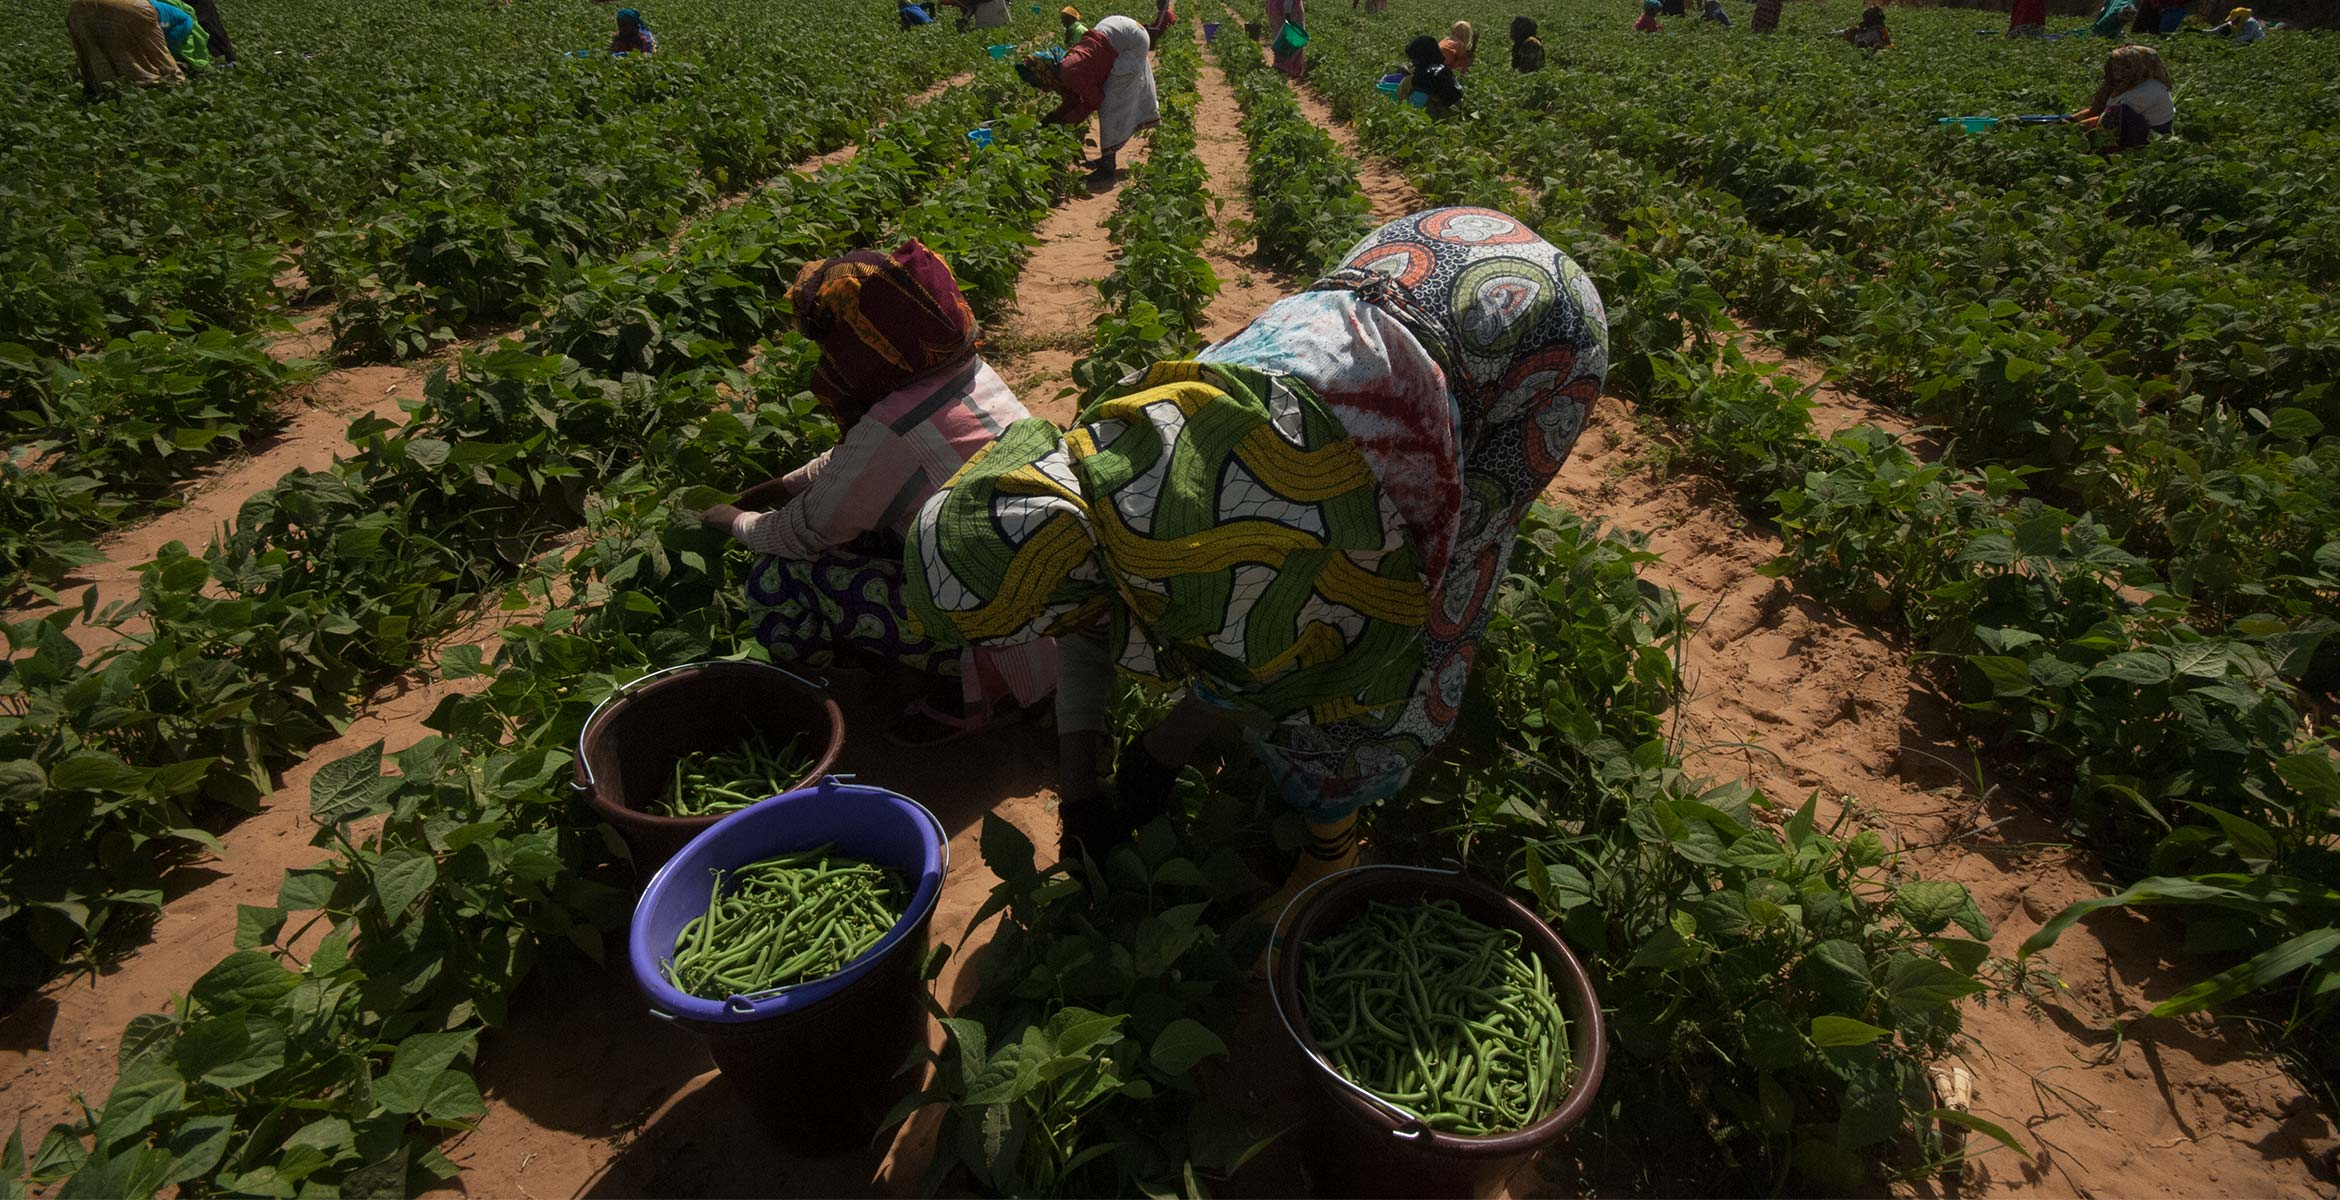 Photograph of Haricot Bean plants growing on the Barfoots Senegal farm SCL